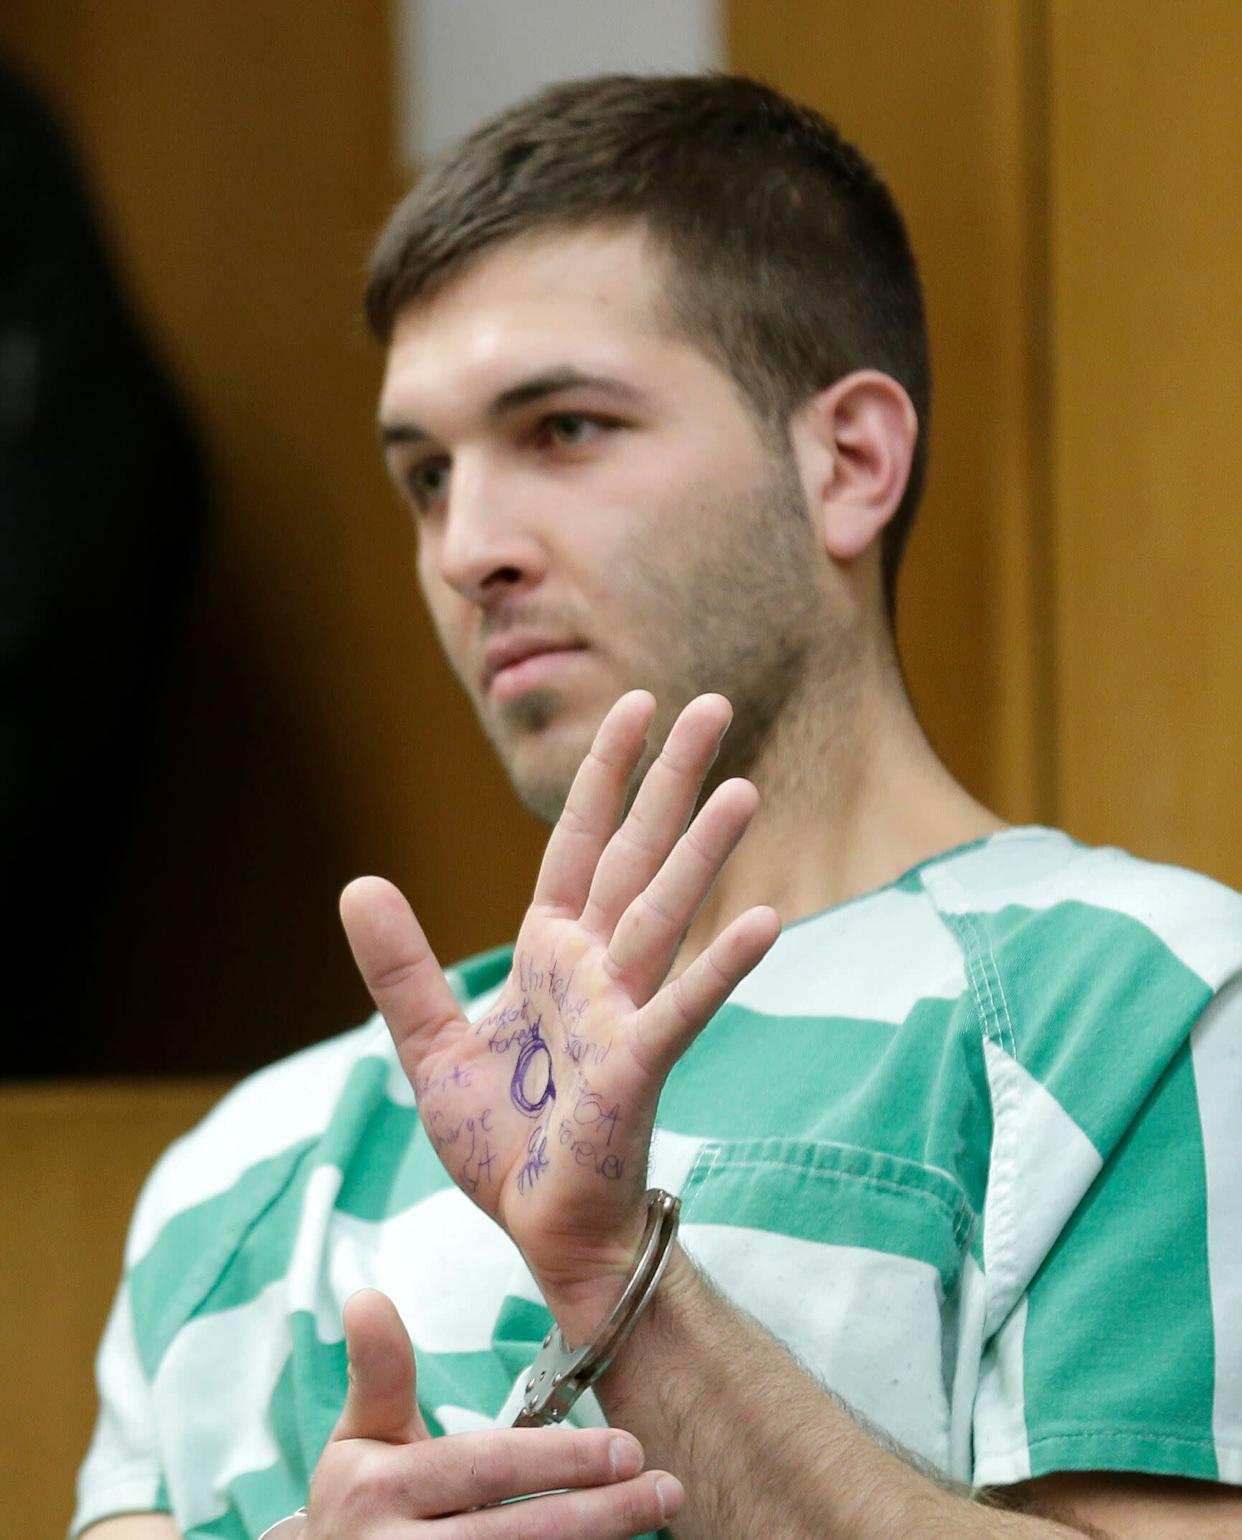 Comello displayed writing on his hand that included pro-Donald Trump slogans during his extradition hearing in Toms River, N.J., Monday, March 18, 2019. (AP Photo/Seth Wenig) (Photo: ASSOCIATED PRESS)